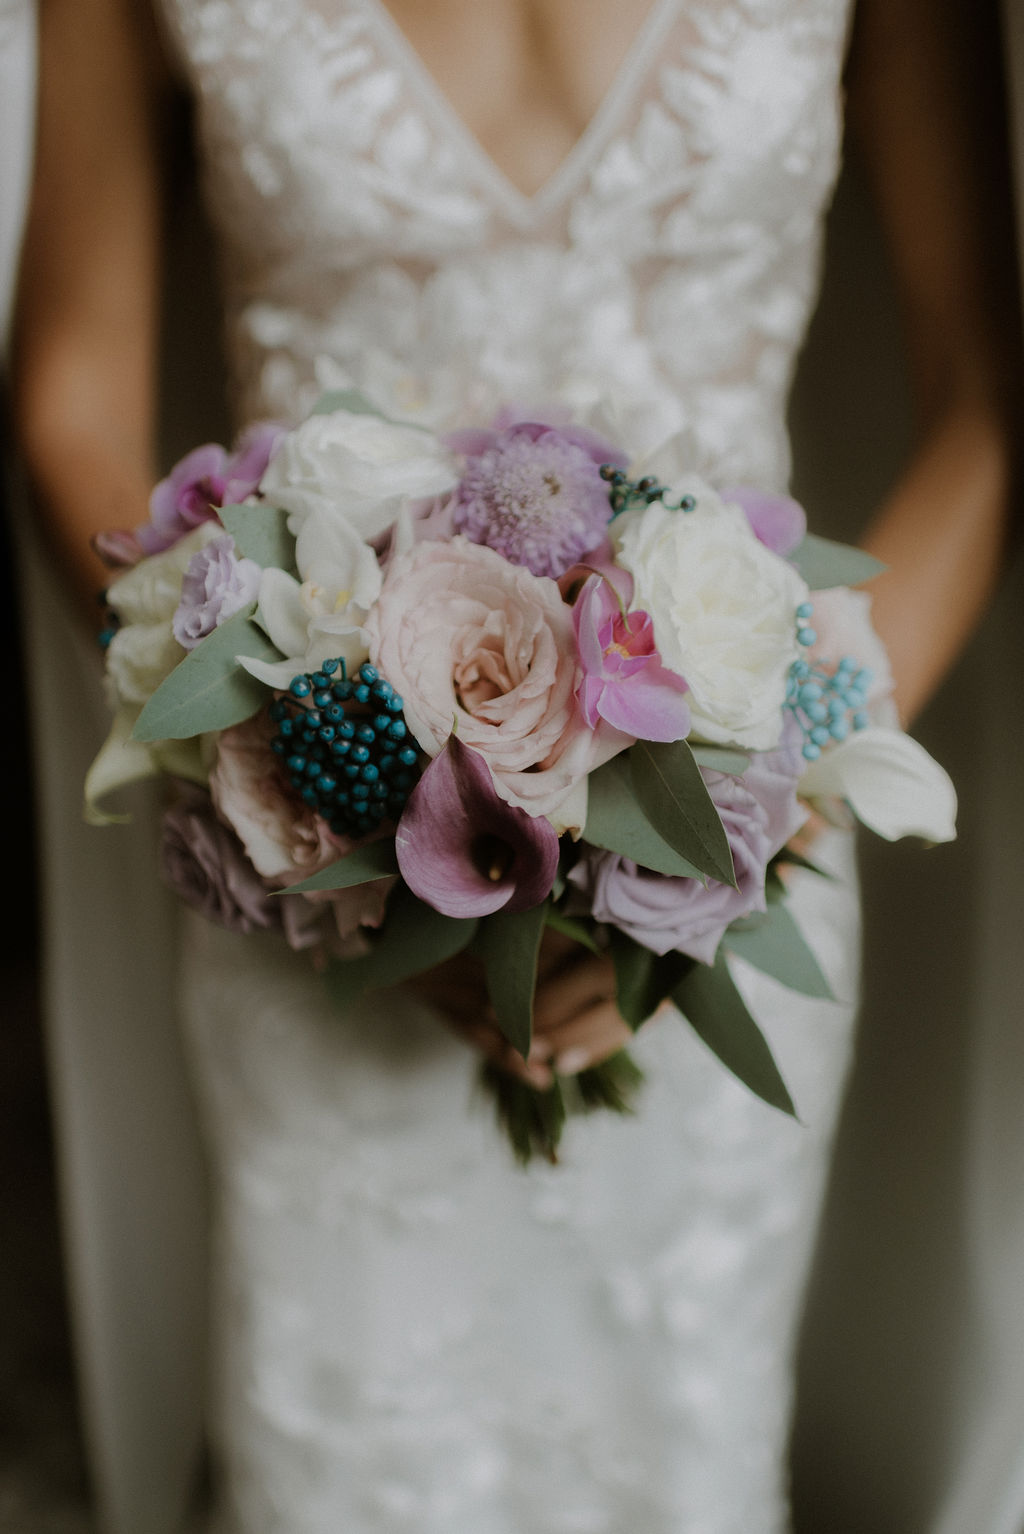 Atelier Ashley Flowers + Ritz DC + Bridal Bouquet + Roses + Violet Short